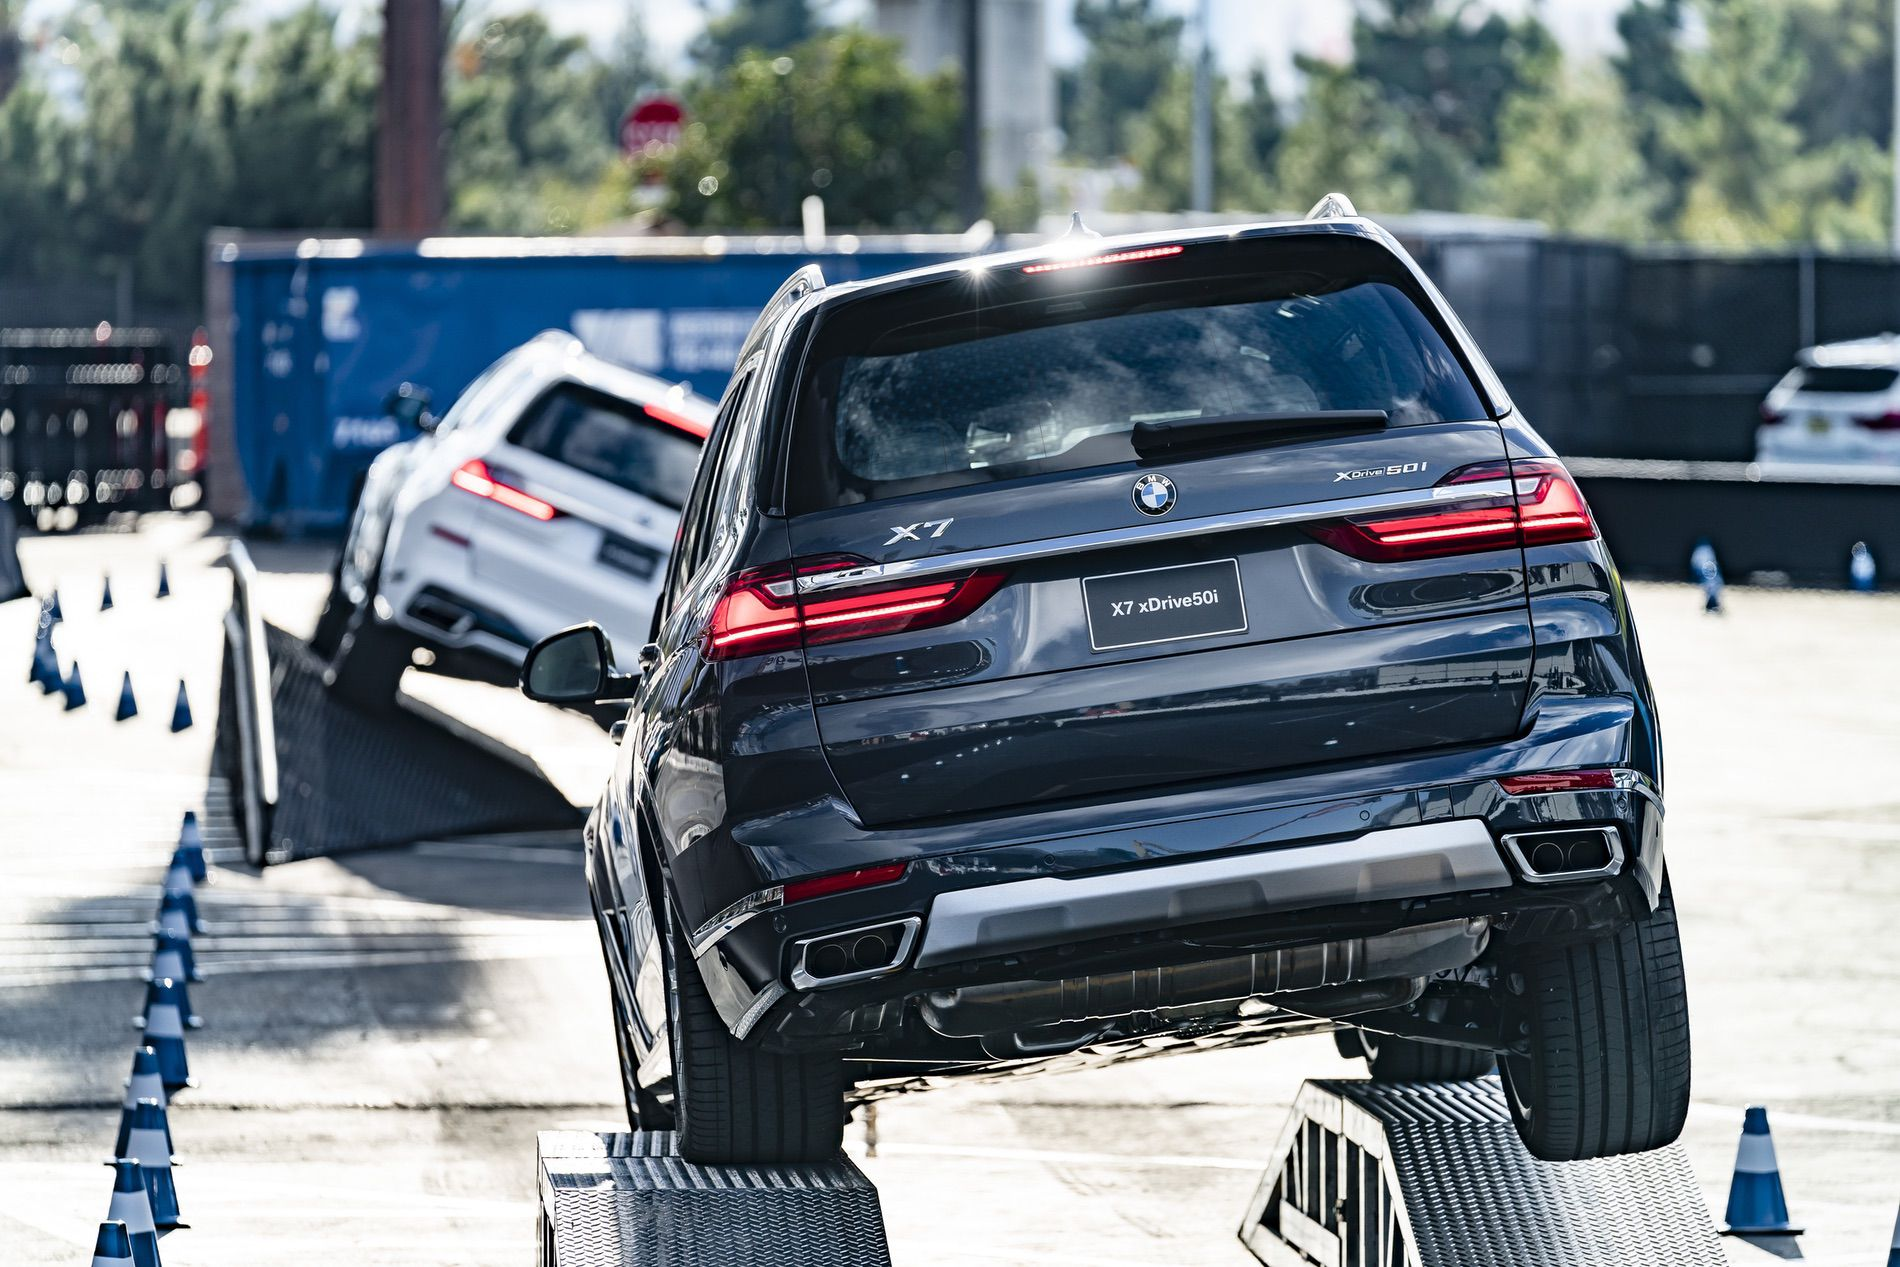 Bmw X7 Doing Some Offroad Tricks At 2019 Ces